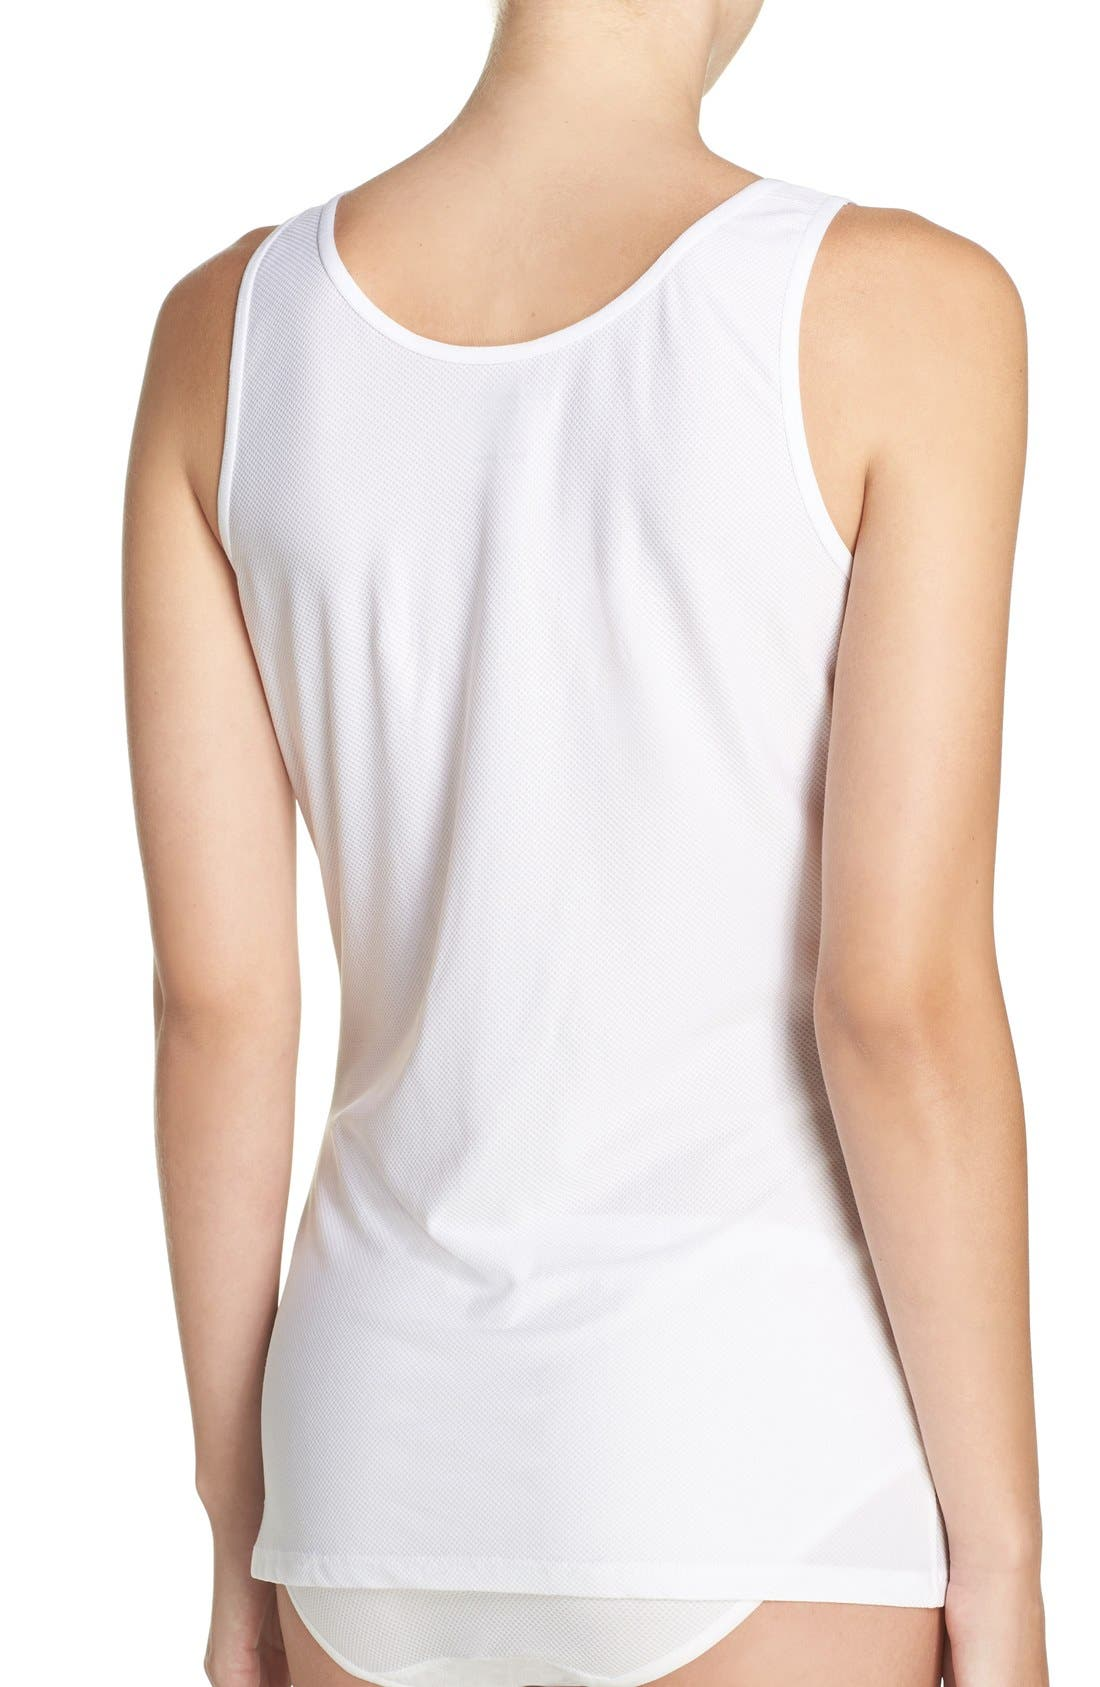 Give-N-Go<sup>®</sup> Sport Tank,                             Alternate thumbnail 2, color,                             White